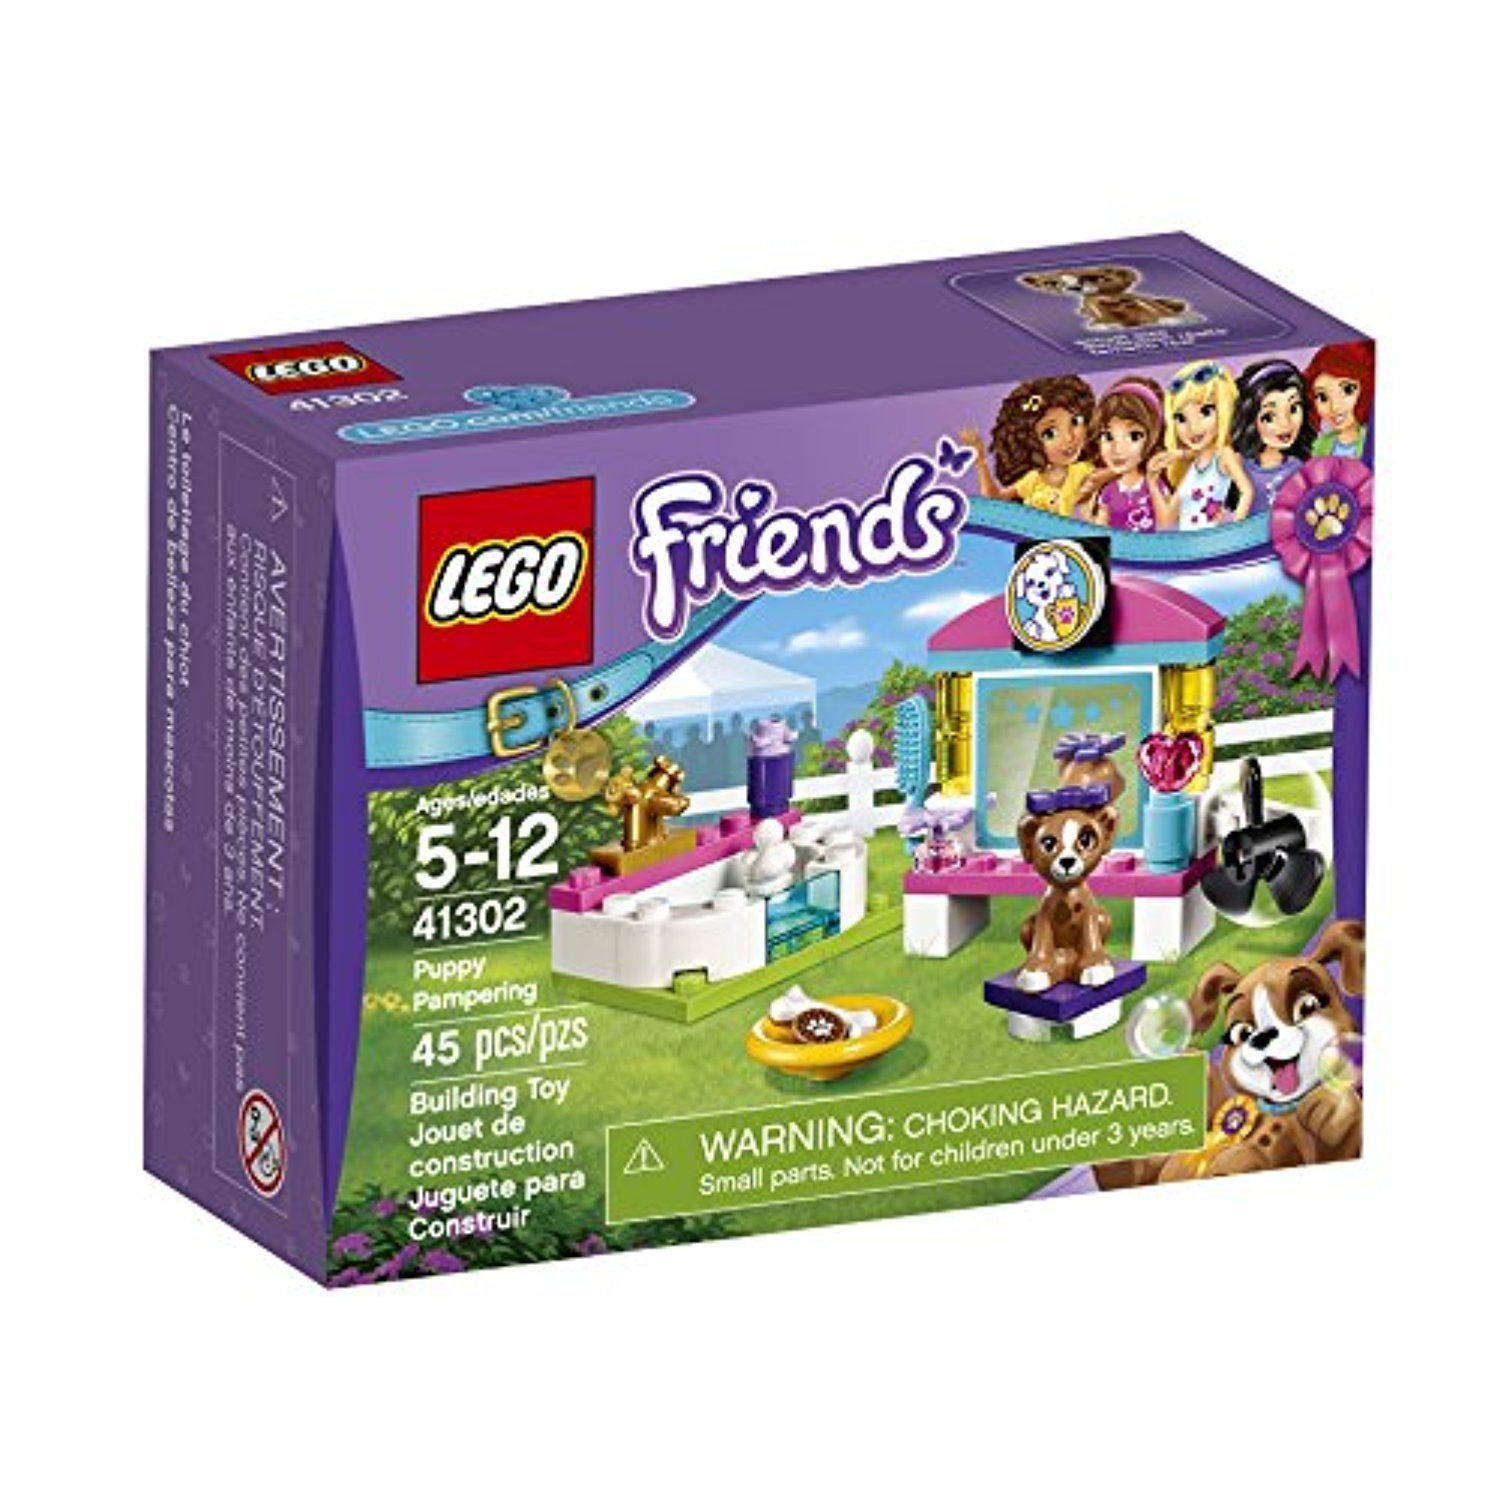 LEGO Friends Puppy Pampering 41302 Building Kit